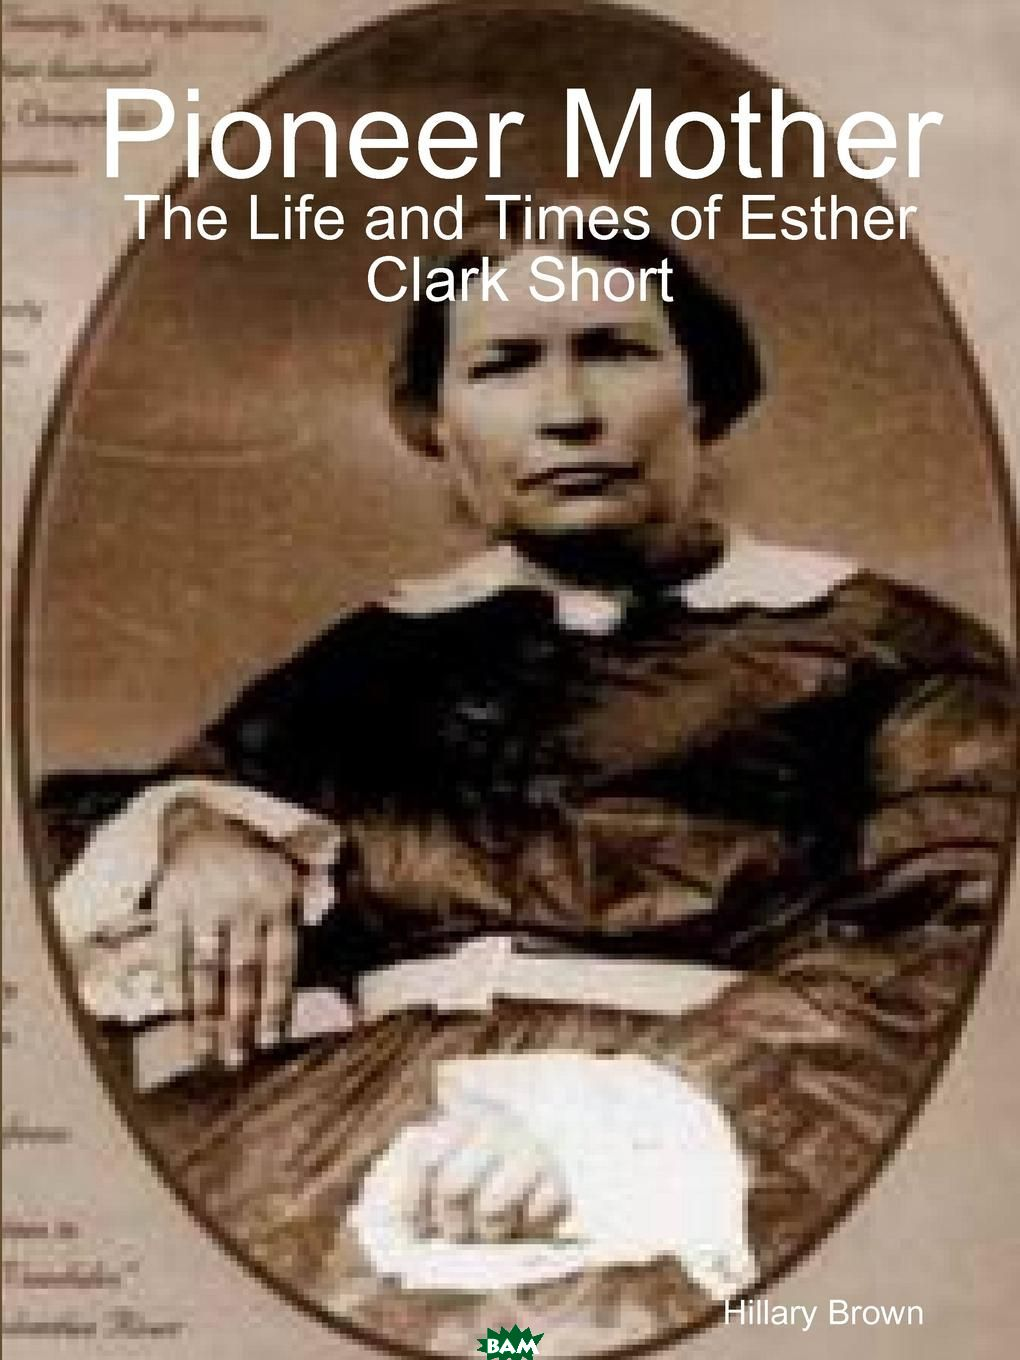 Купить Pioneer Mother. The Life and Times of Esther Clark Short, Hillary Brown, 9781257027606